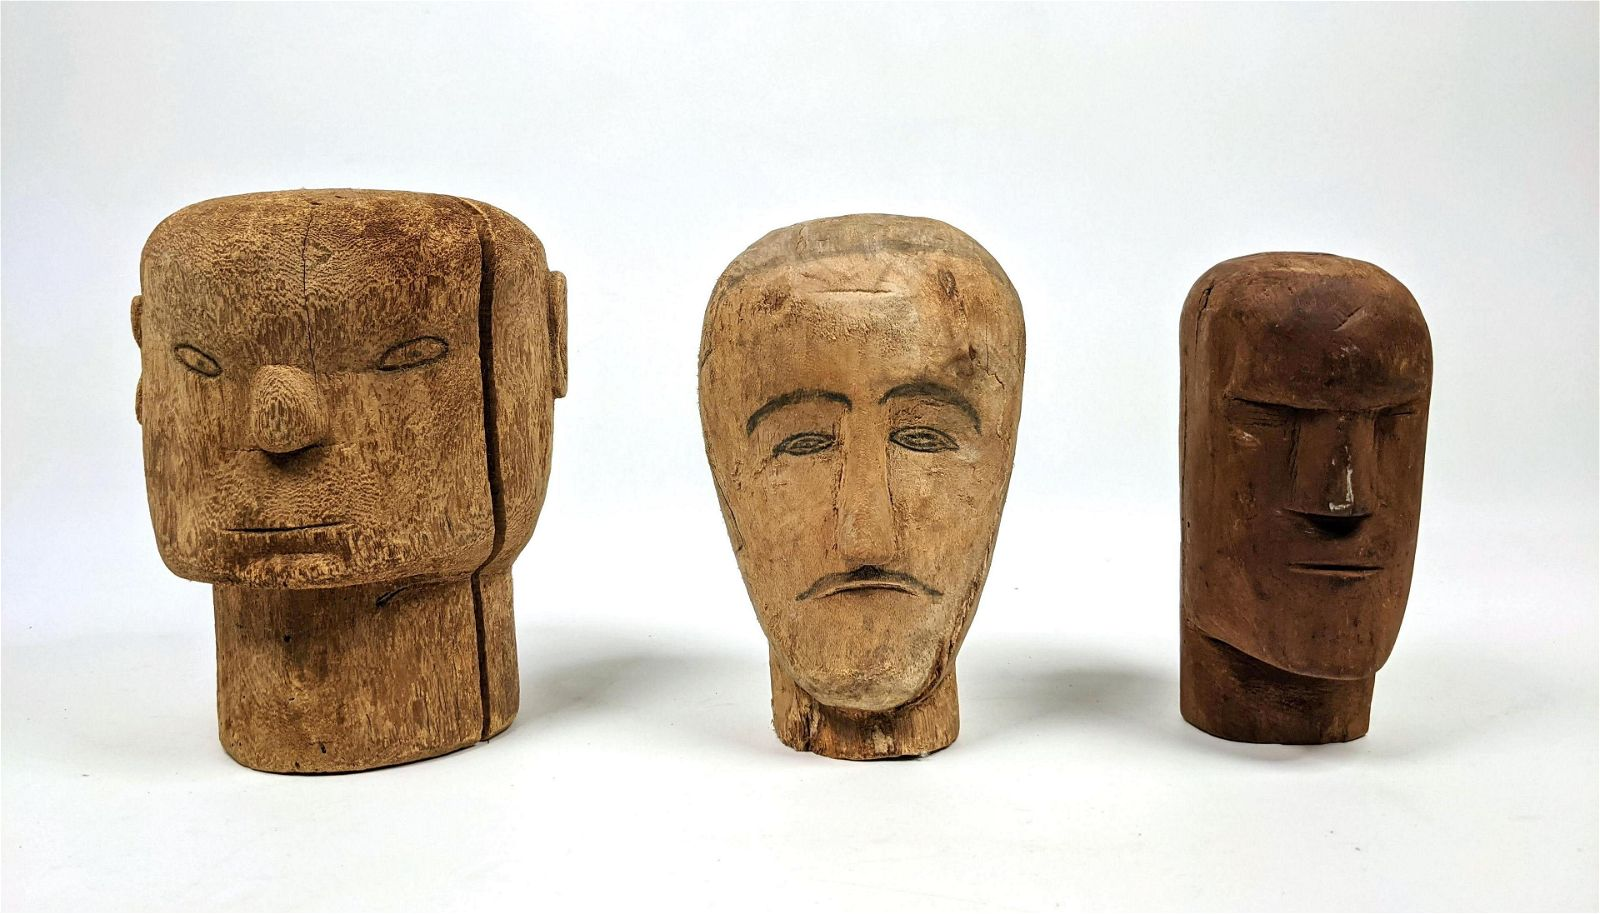 Collection of 3 Carved Wood Heads.